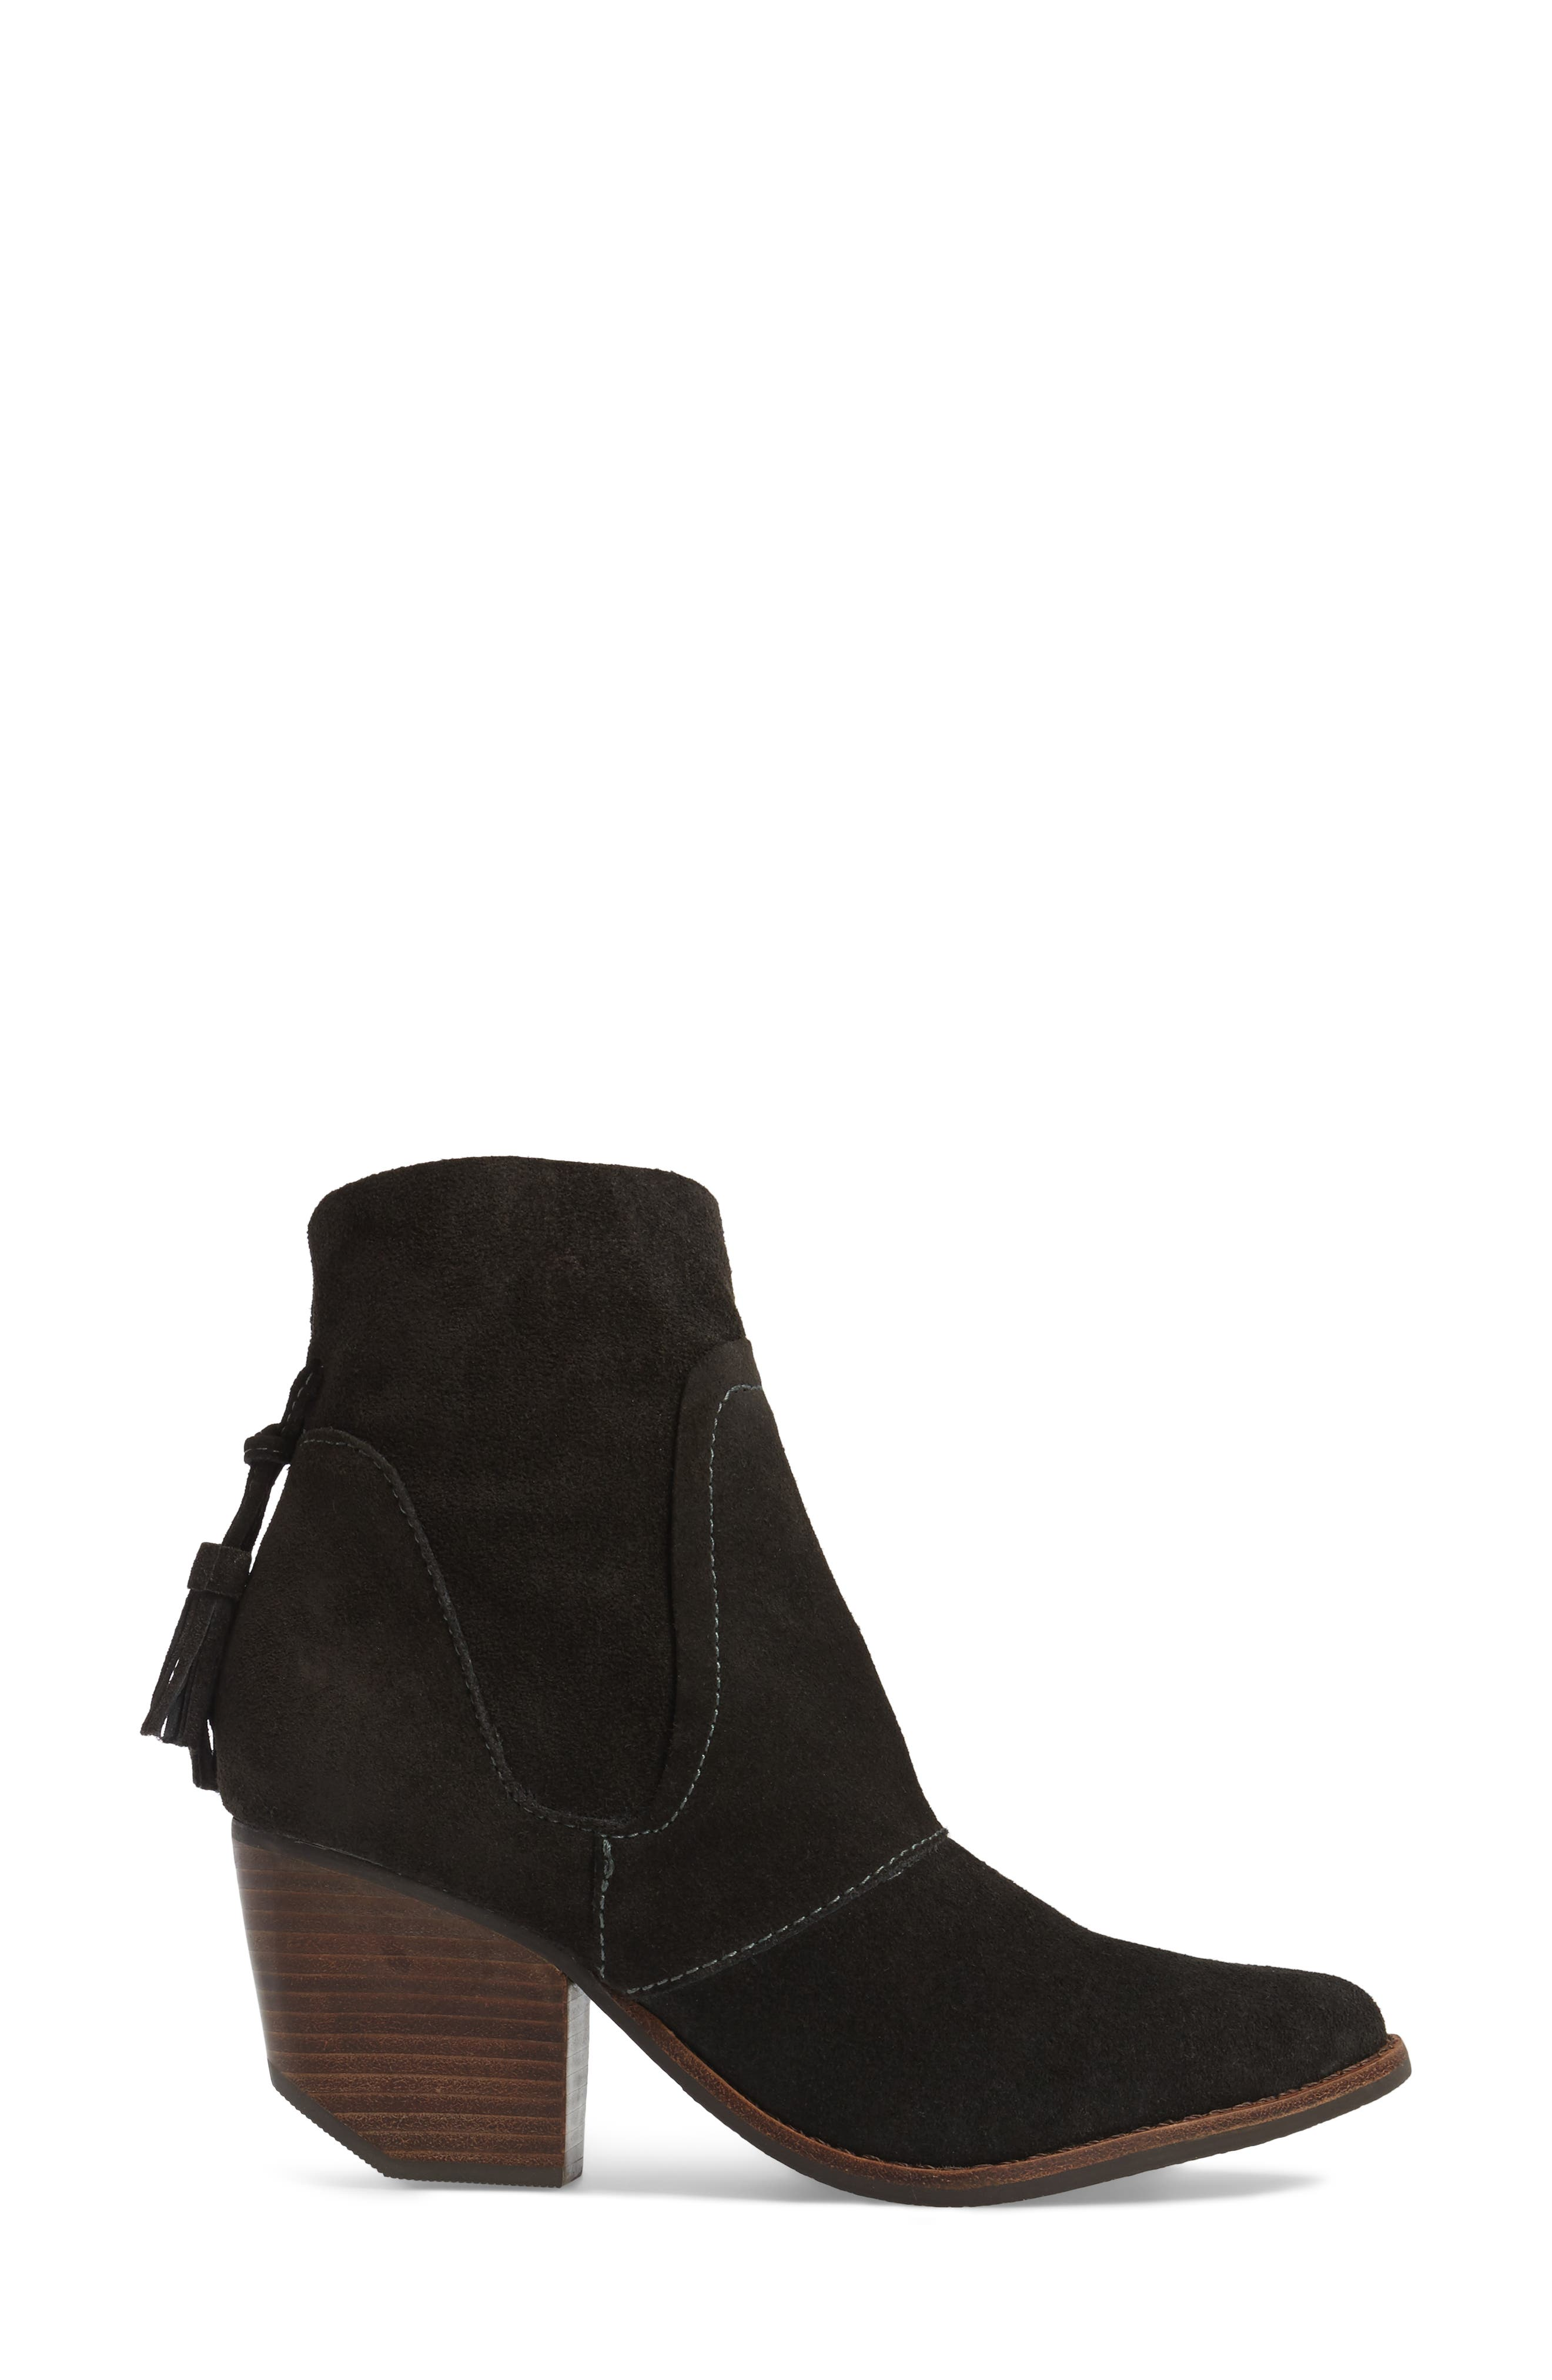 Laney Notched Heel Bootie,                             Alternate thumbnail 12, color,